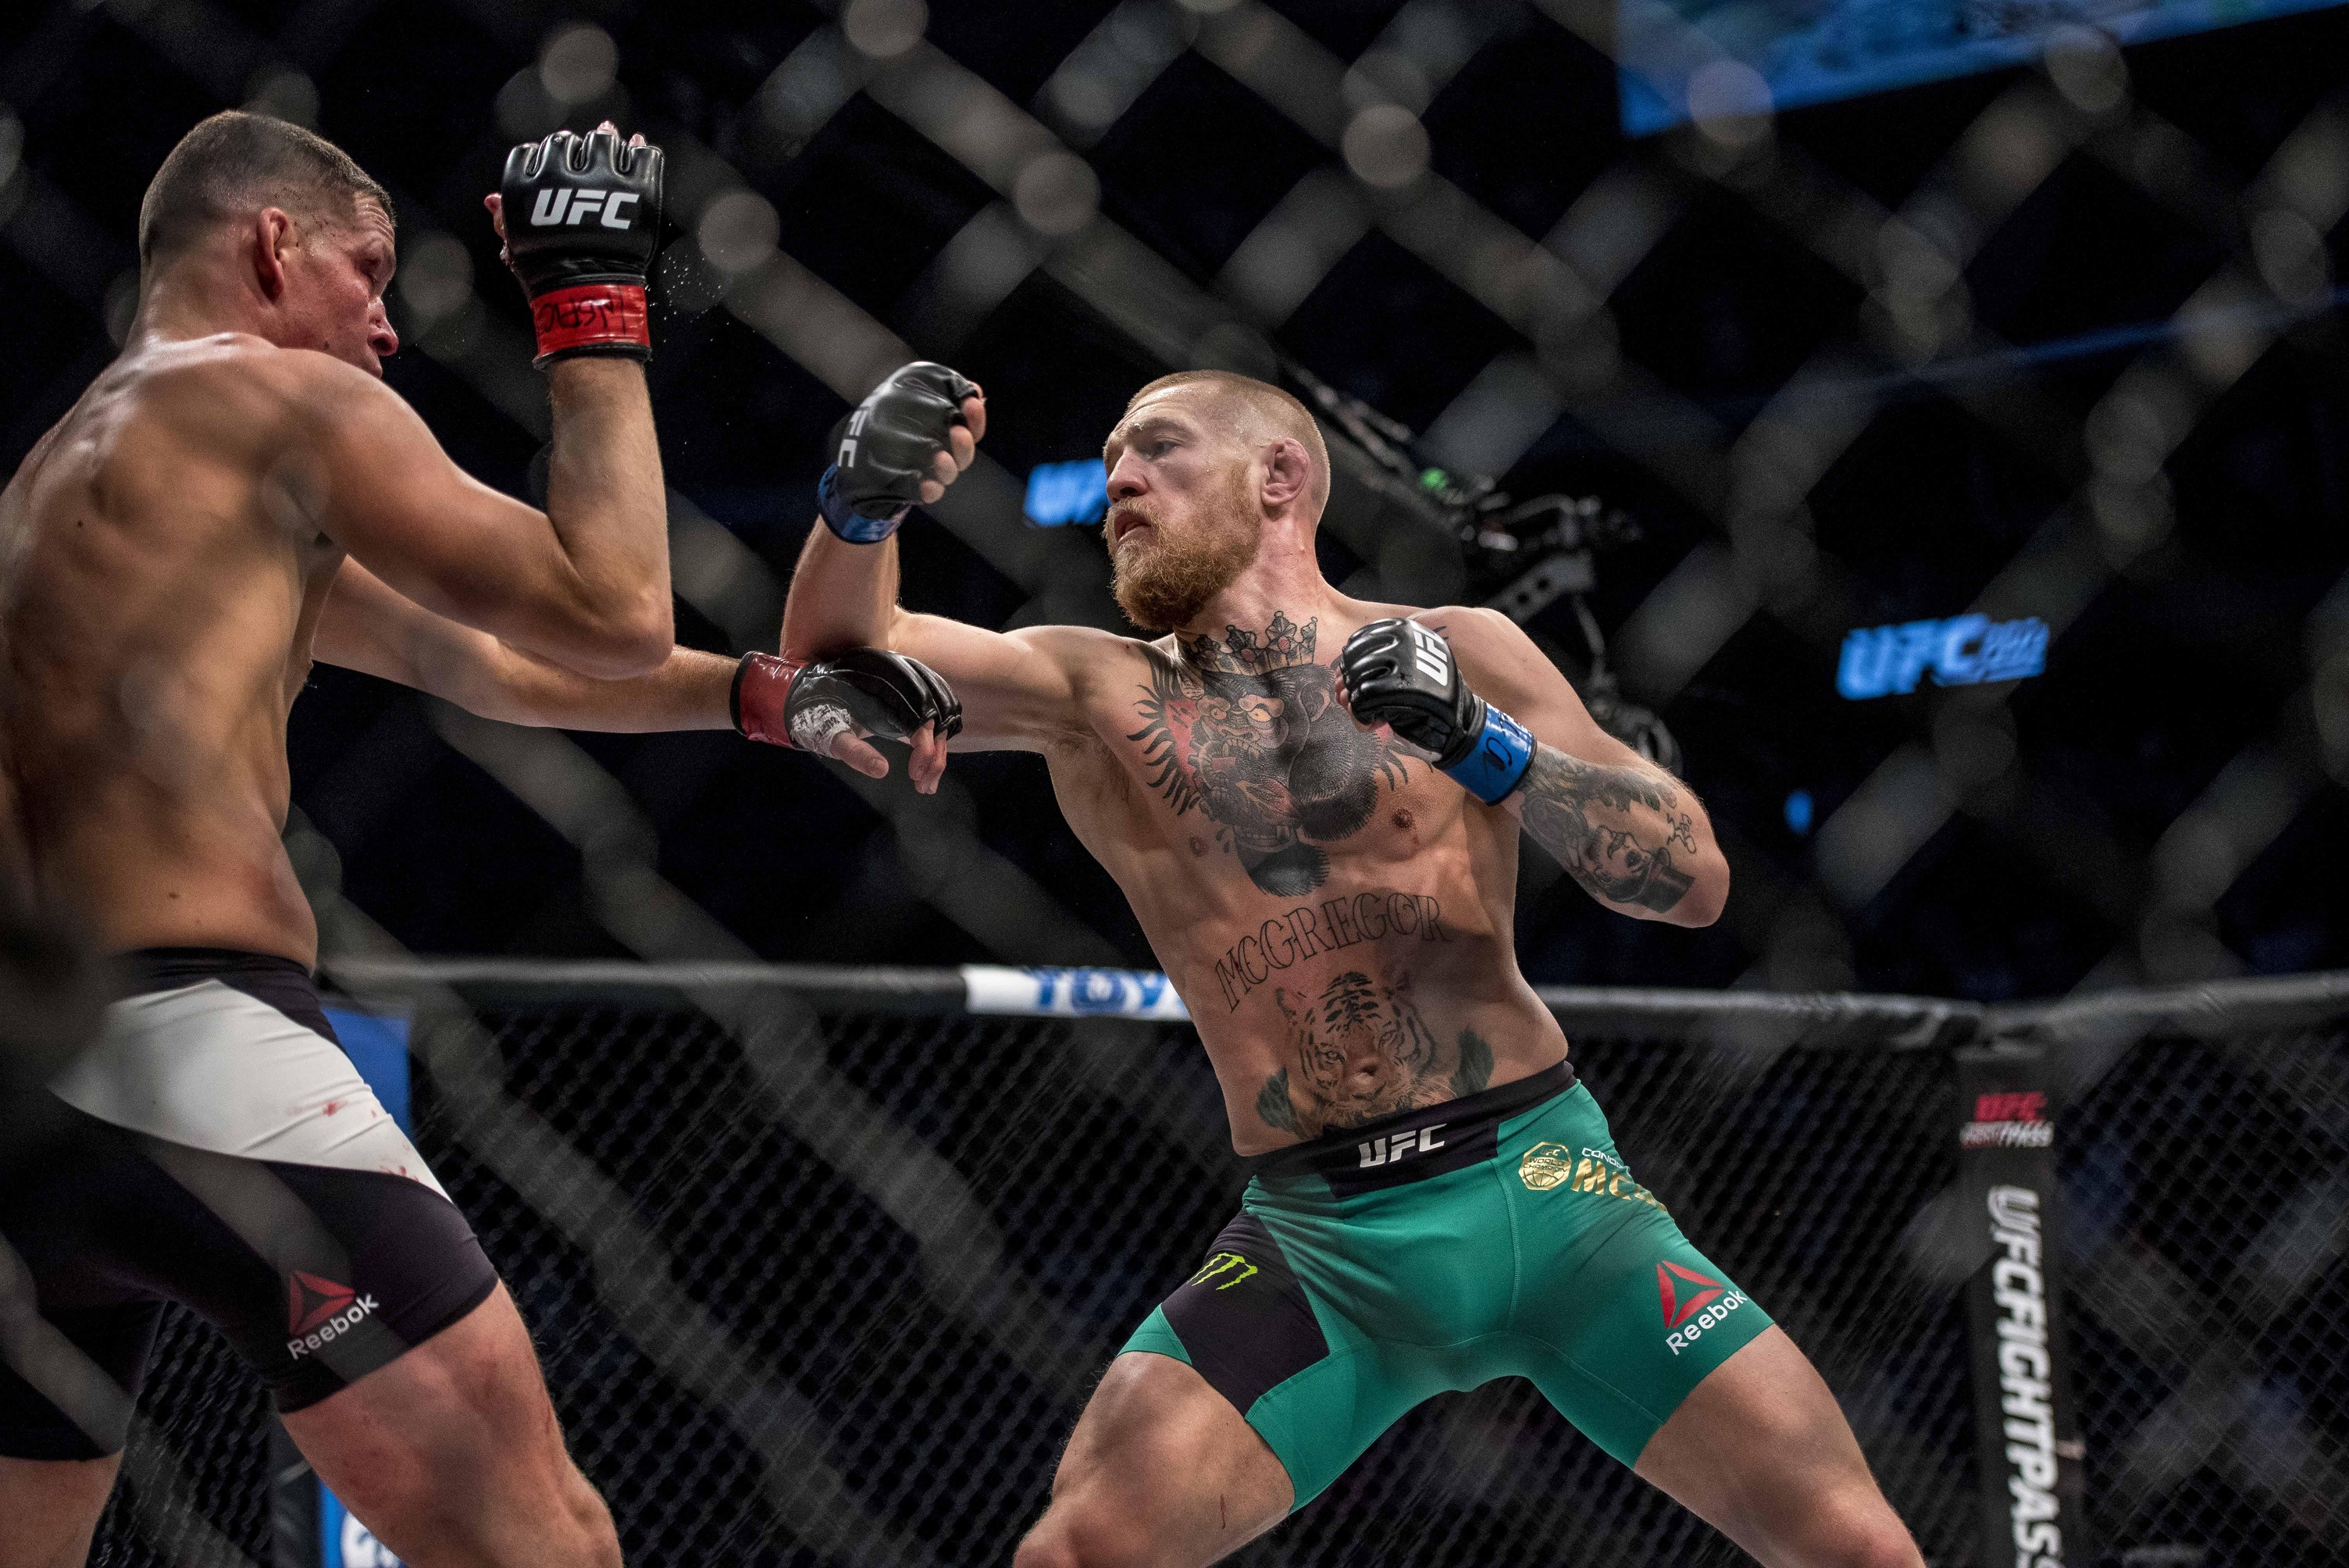 eddie alvarez questions conor mcgregor s champion spirit flocombat aug 20 2016 las vegas nv usa nate diaz competes against conor mcgregor during ufc 202 at t mobile arena mandatory credit joshua dahl usa today sports